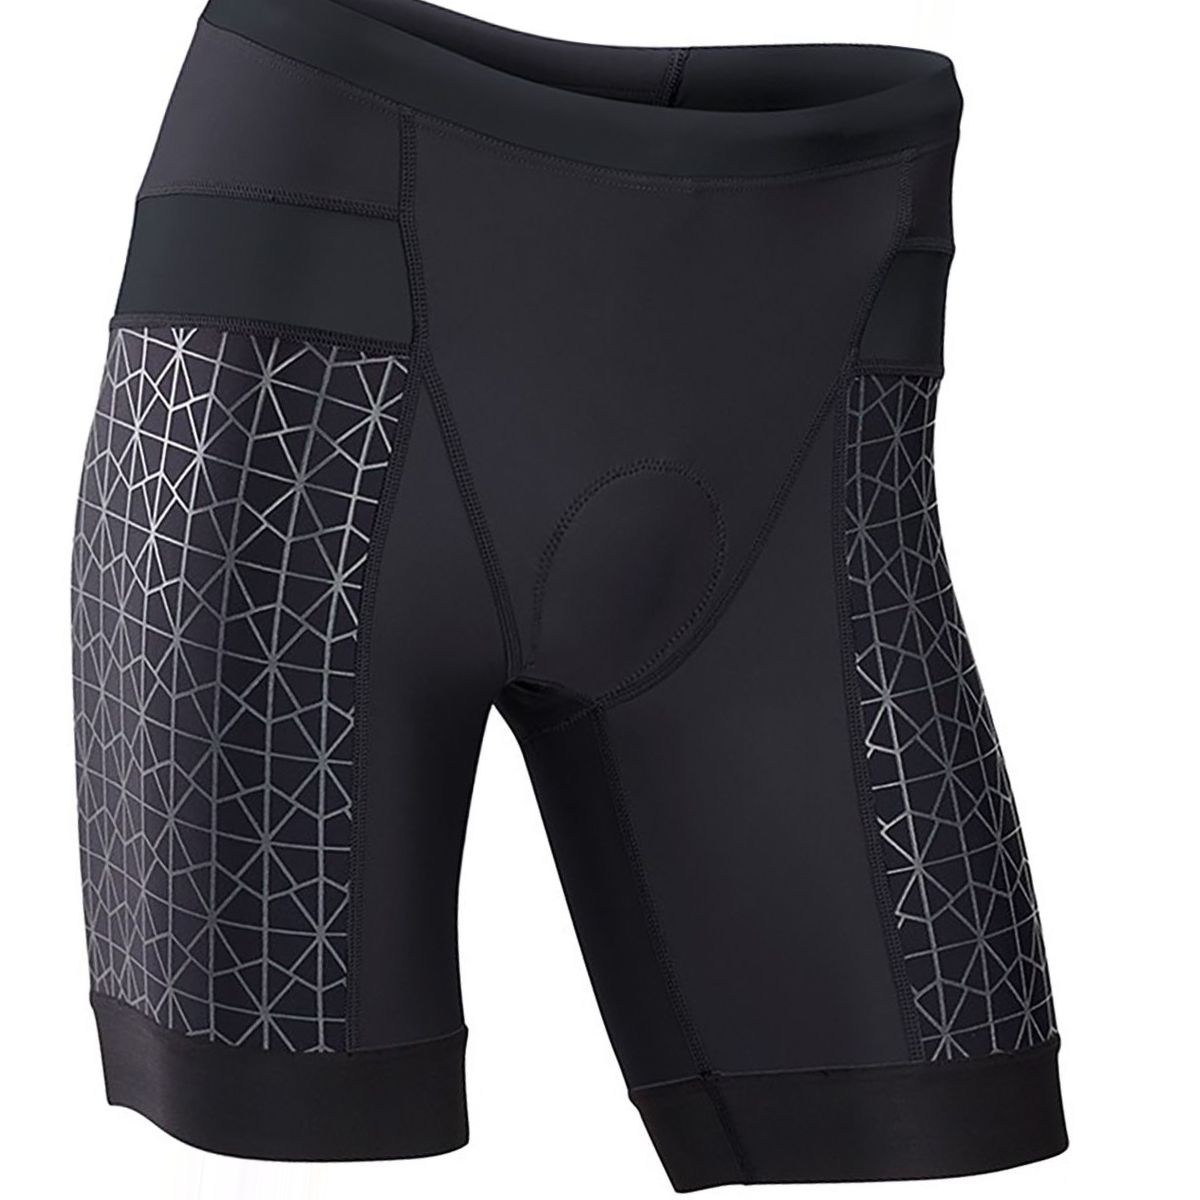 TYR Competitor 9in Tri Short - Men's